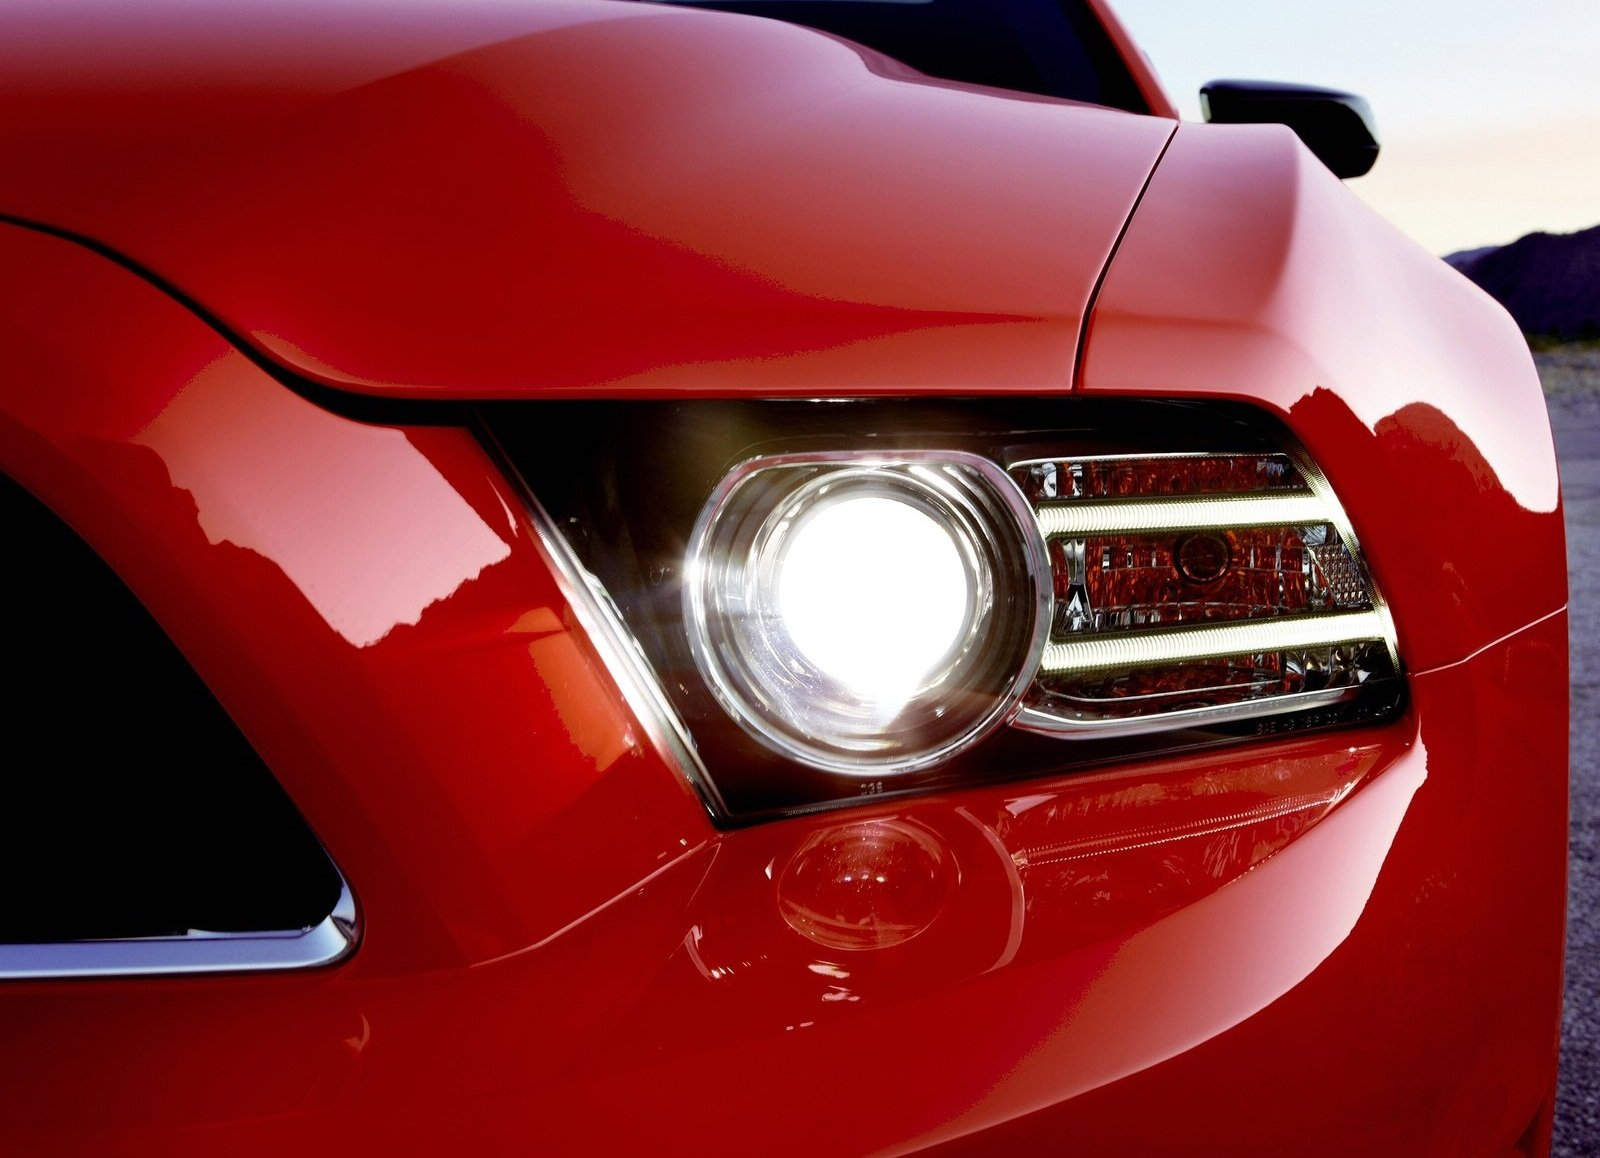 Ford-Mustang_2013_1600x1200_wallpaper_2c